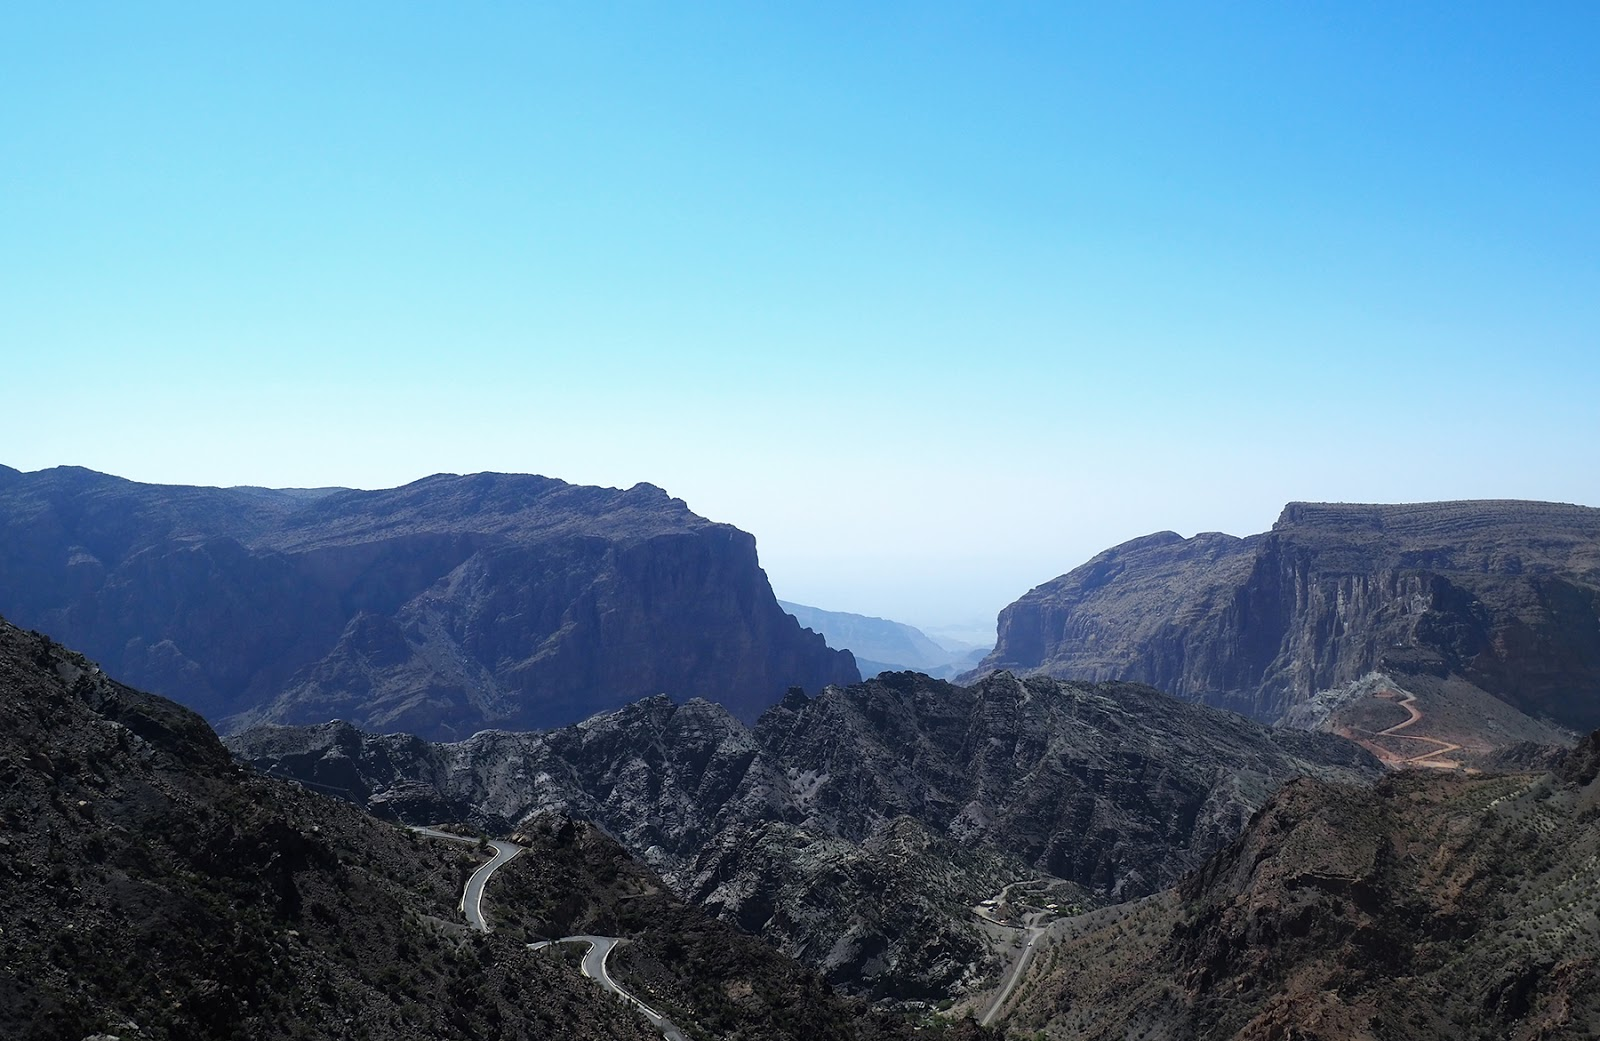 Euriental | luxury travel & style | Diana's lookout, Oman